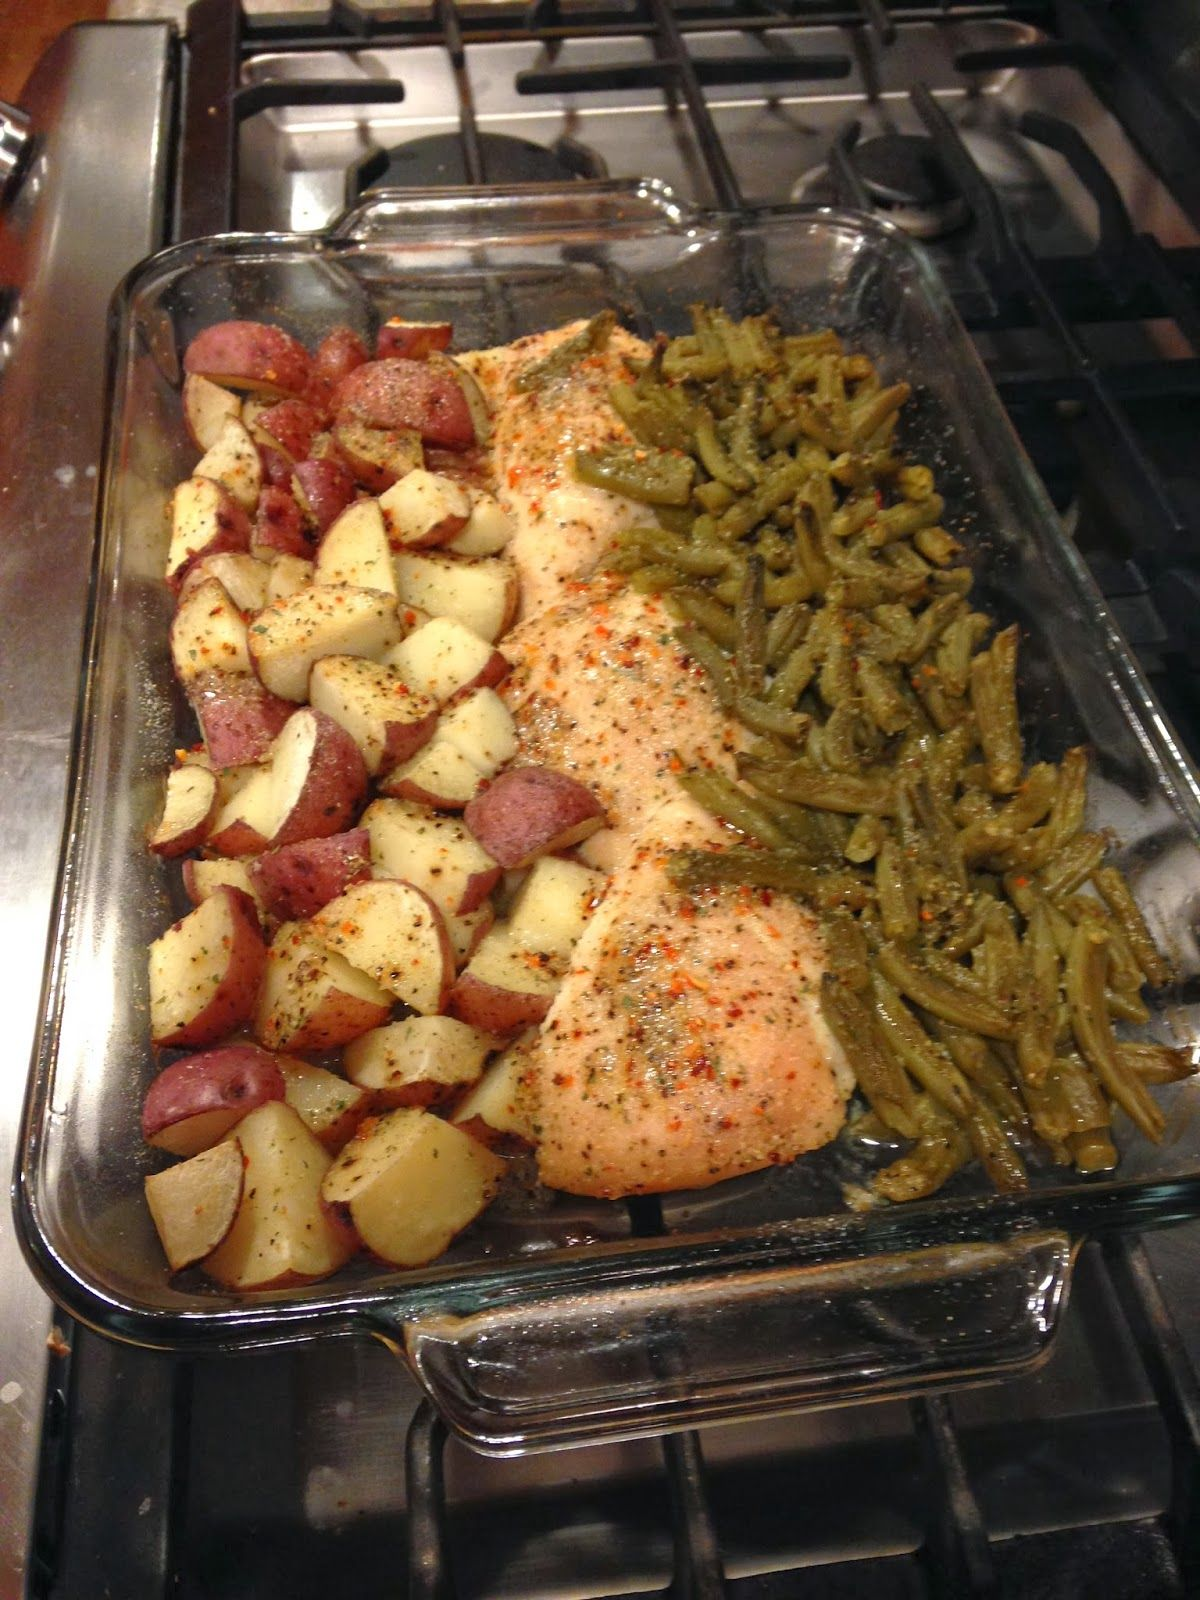 Italian Chicken Potato And Green Bean Bake 1 Row Cut Potatoes Next To 1 Row Of Chicken Breasts Next To 1 Row Of Green Beans Recipe Calls For Stick